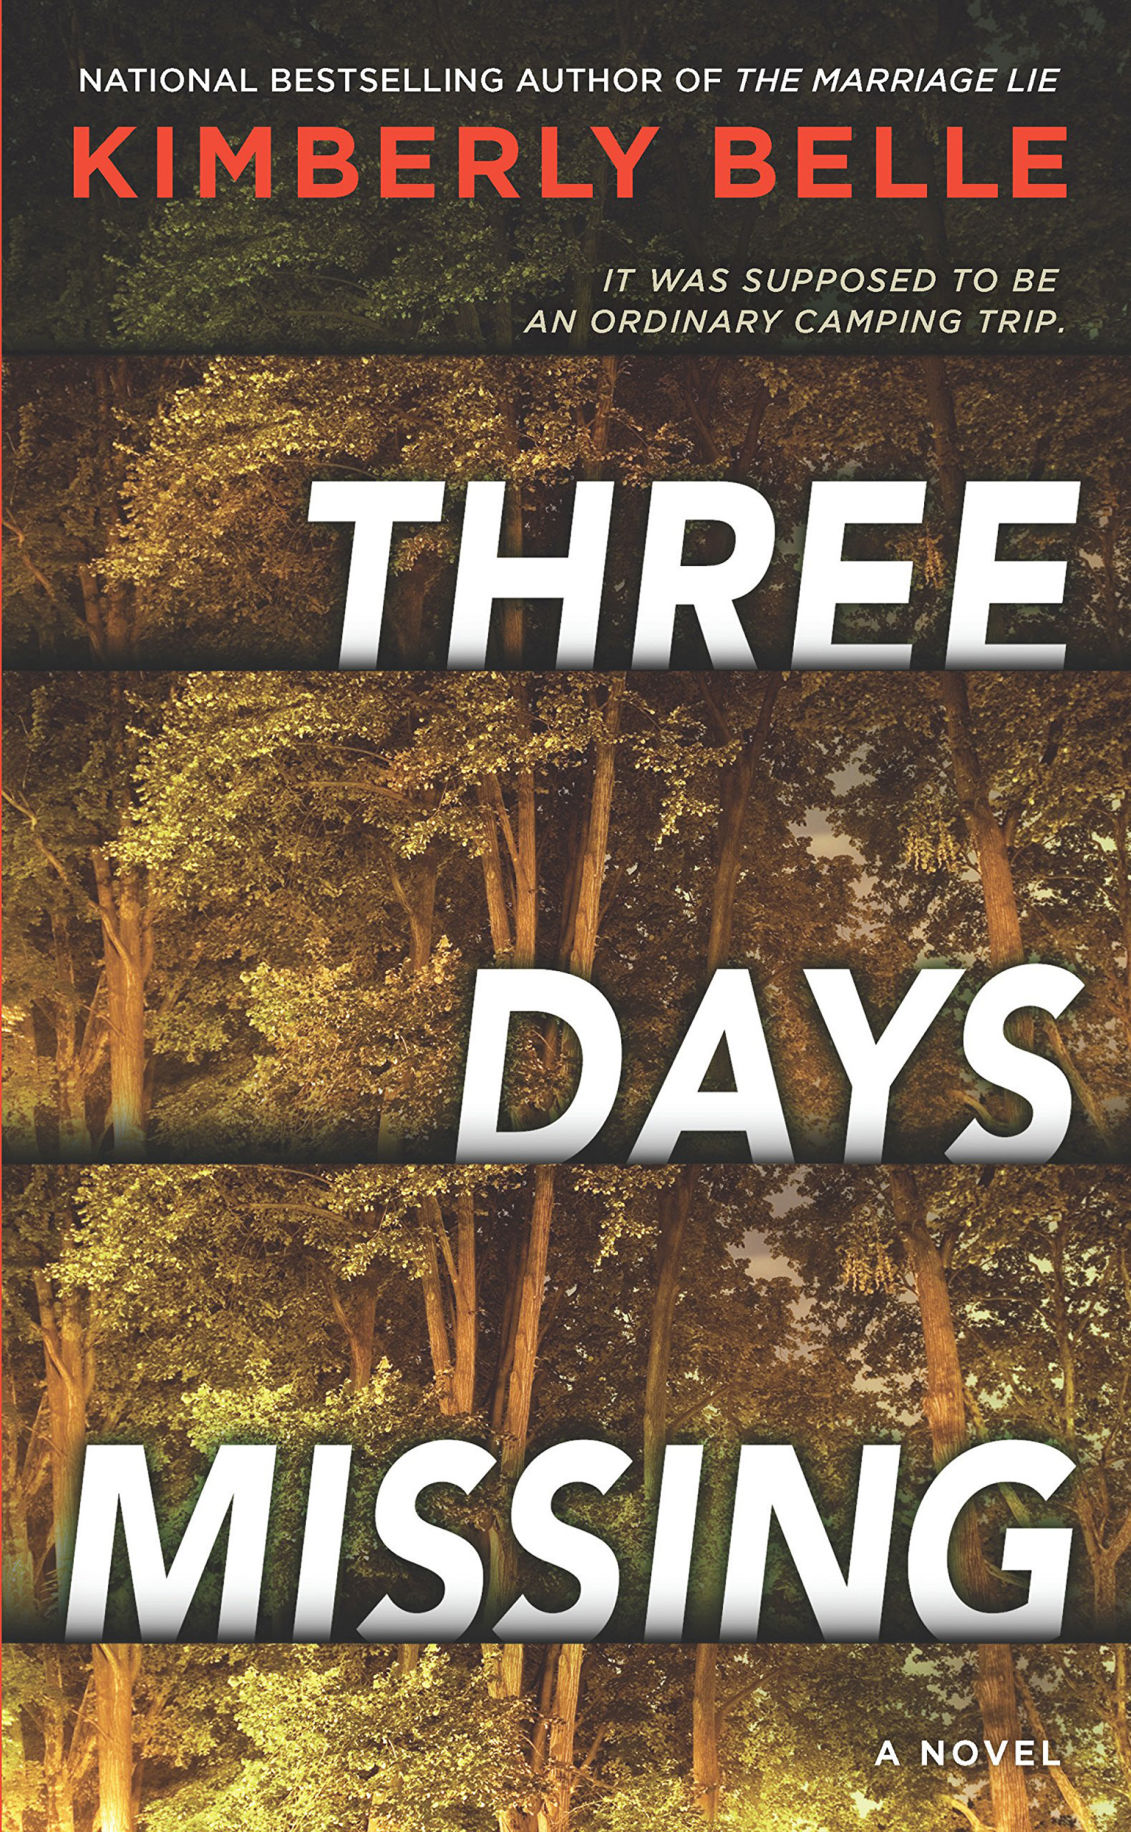 """Three Days Missing"" by Kimberly Belle. Park Row Books, 352 pages."